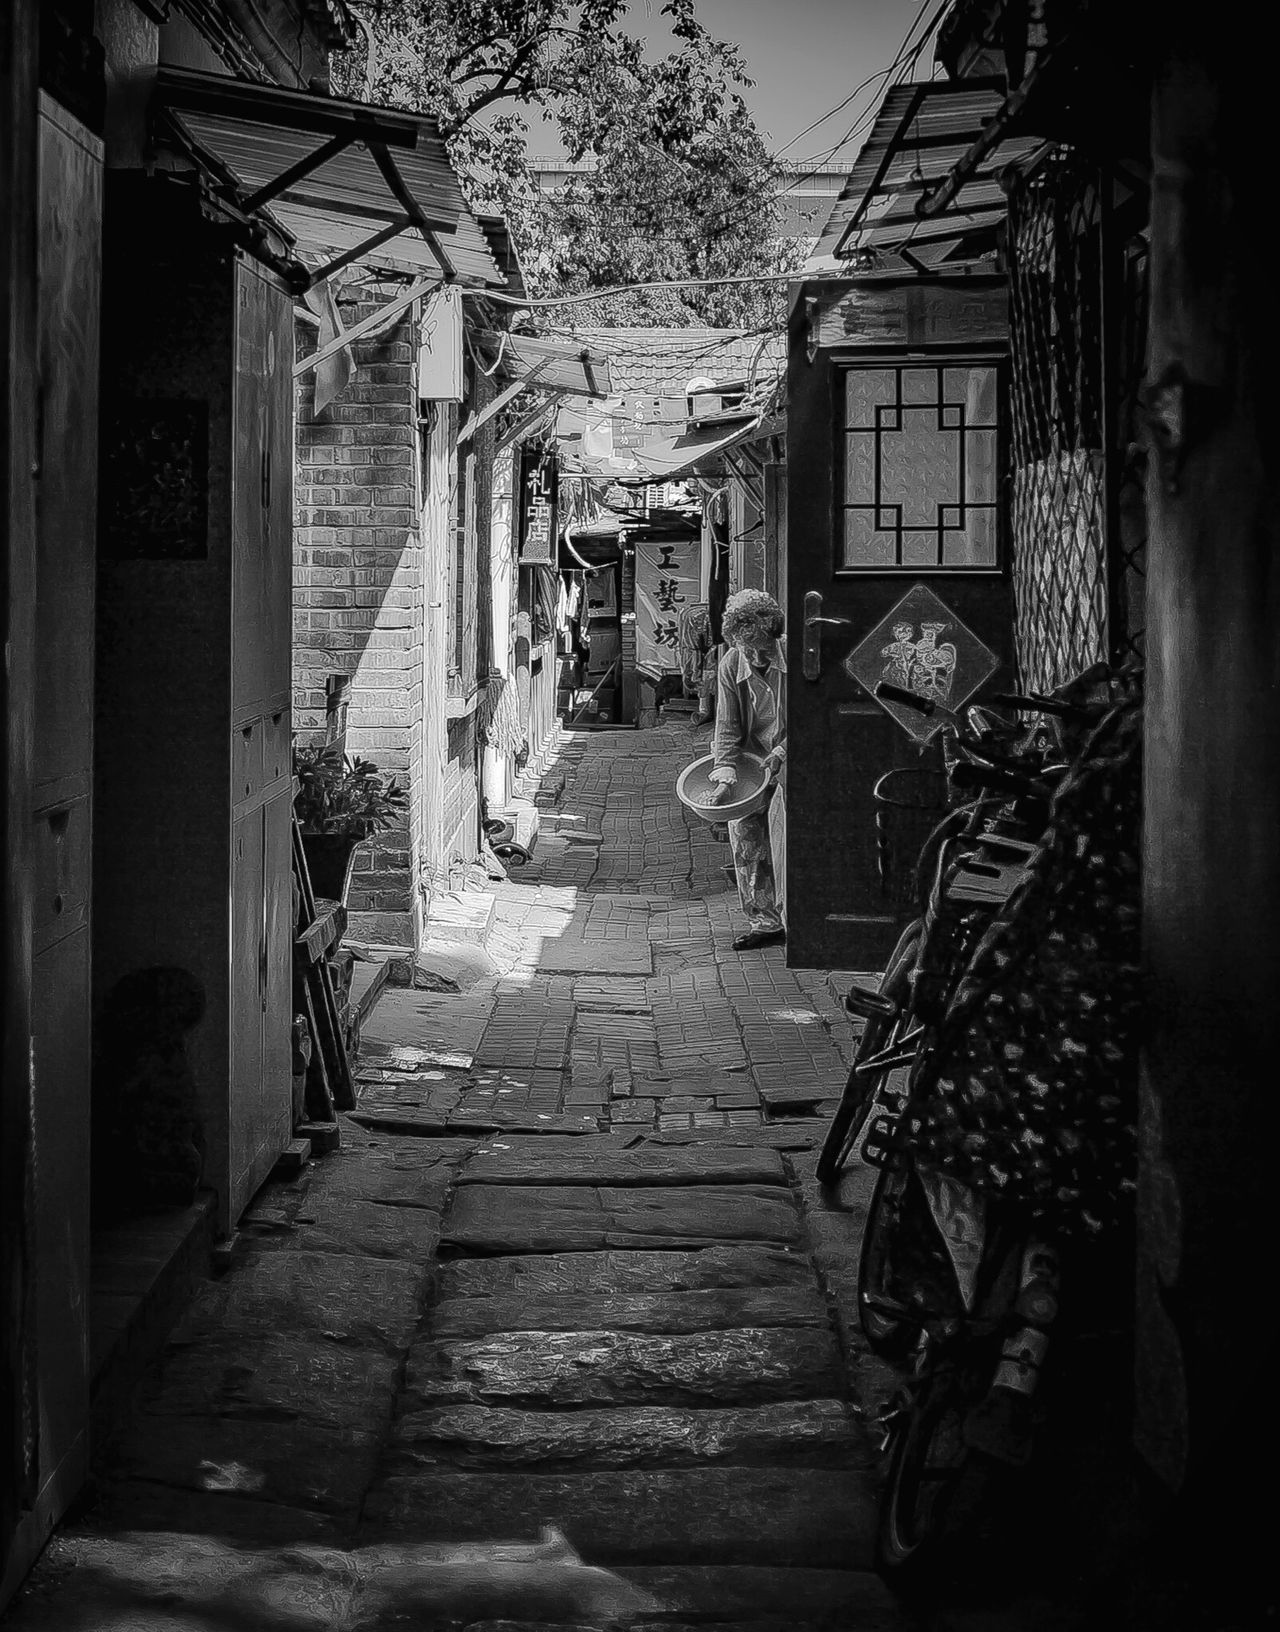 I was shooting a static shot of a Beijing hutong when a little old lady walked into the frame and brought life to the picture. Building Exterior Built Structure Neighborhood Map Neighbourhood Hutong Life Beijing Beijing China Monochrome Blackandwhite Monochrome Photography Monochromatic China Photos Chinese Real China Old China China Beijing Scenes Beijing Trip Hutong Elderly Elderly Woman Old Neighborhoods China Culture 北京 🎈👻